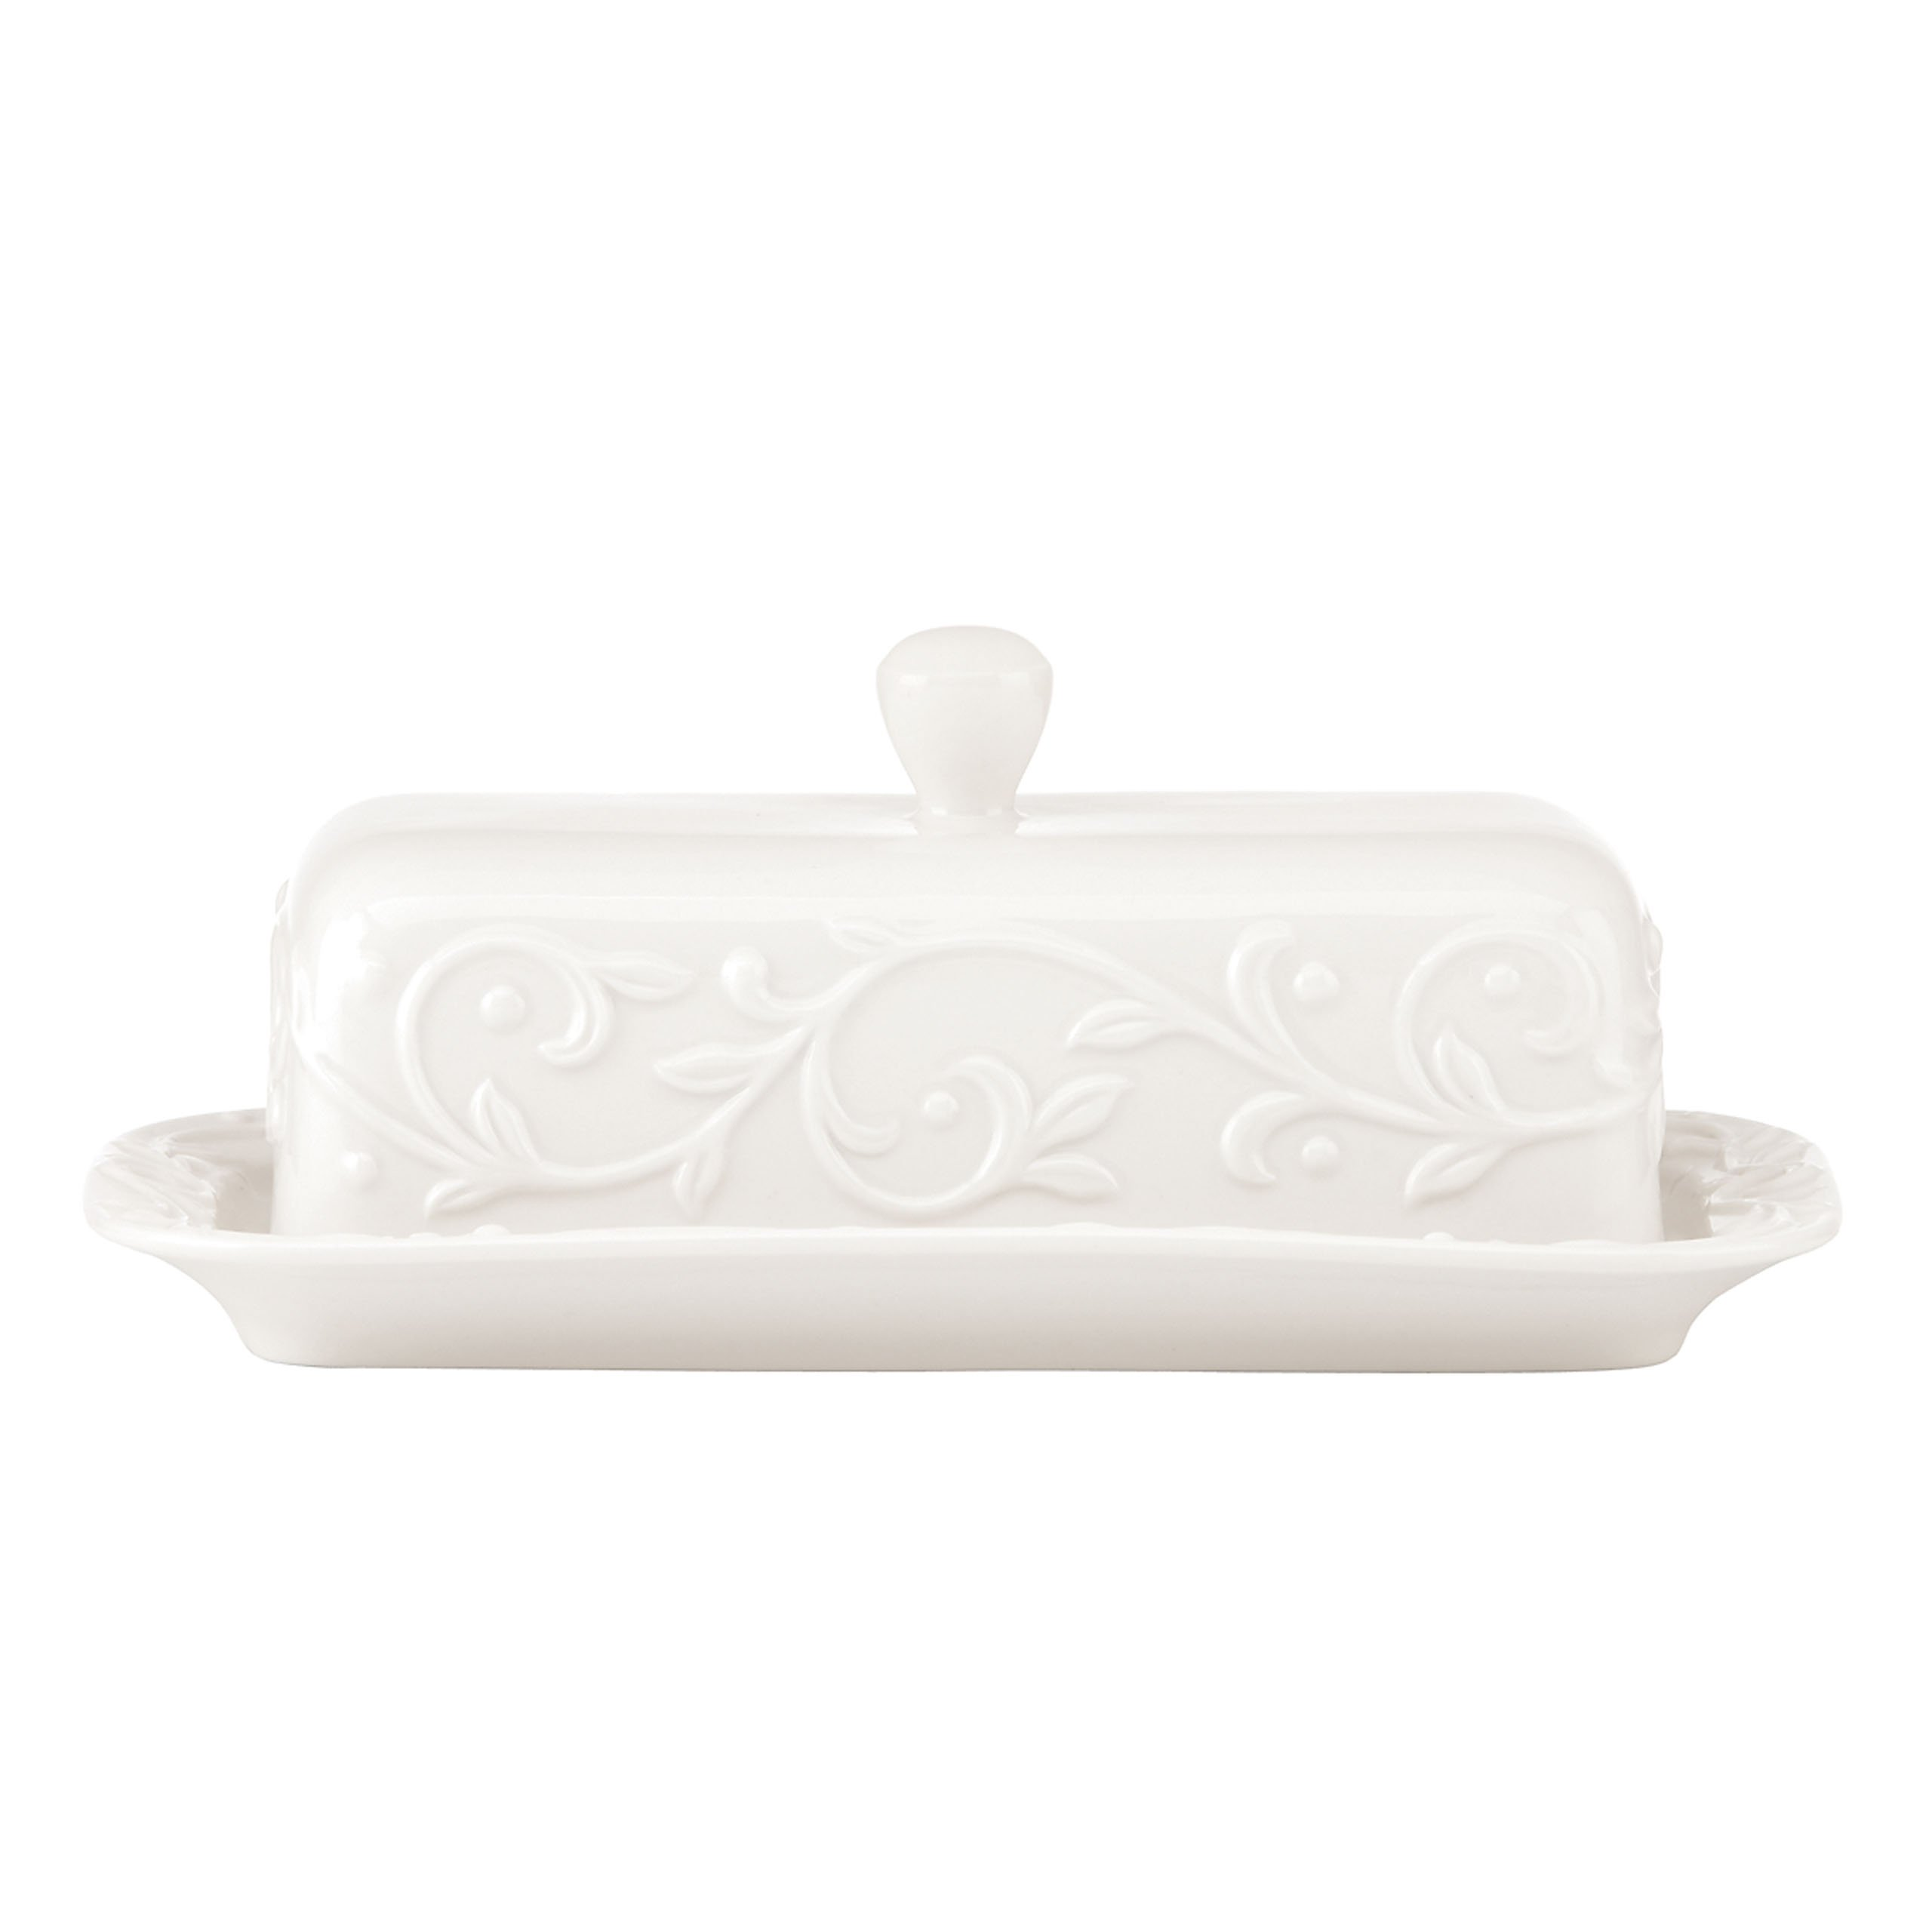 Lenox Opal Innocence Carved Butter Dish, White - 826012